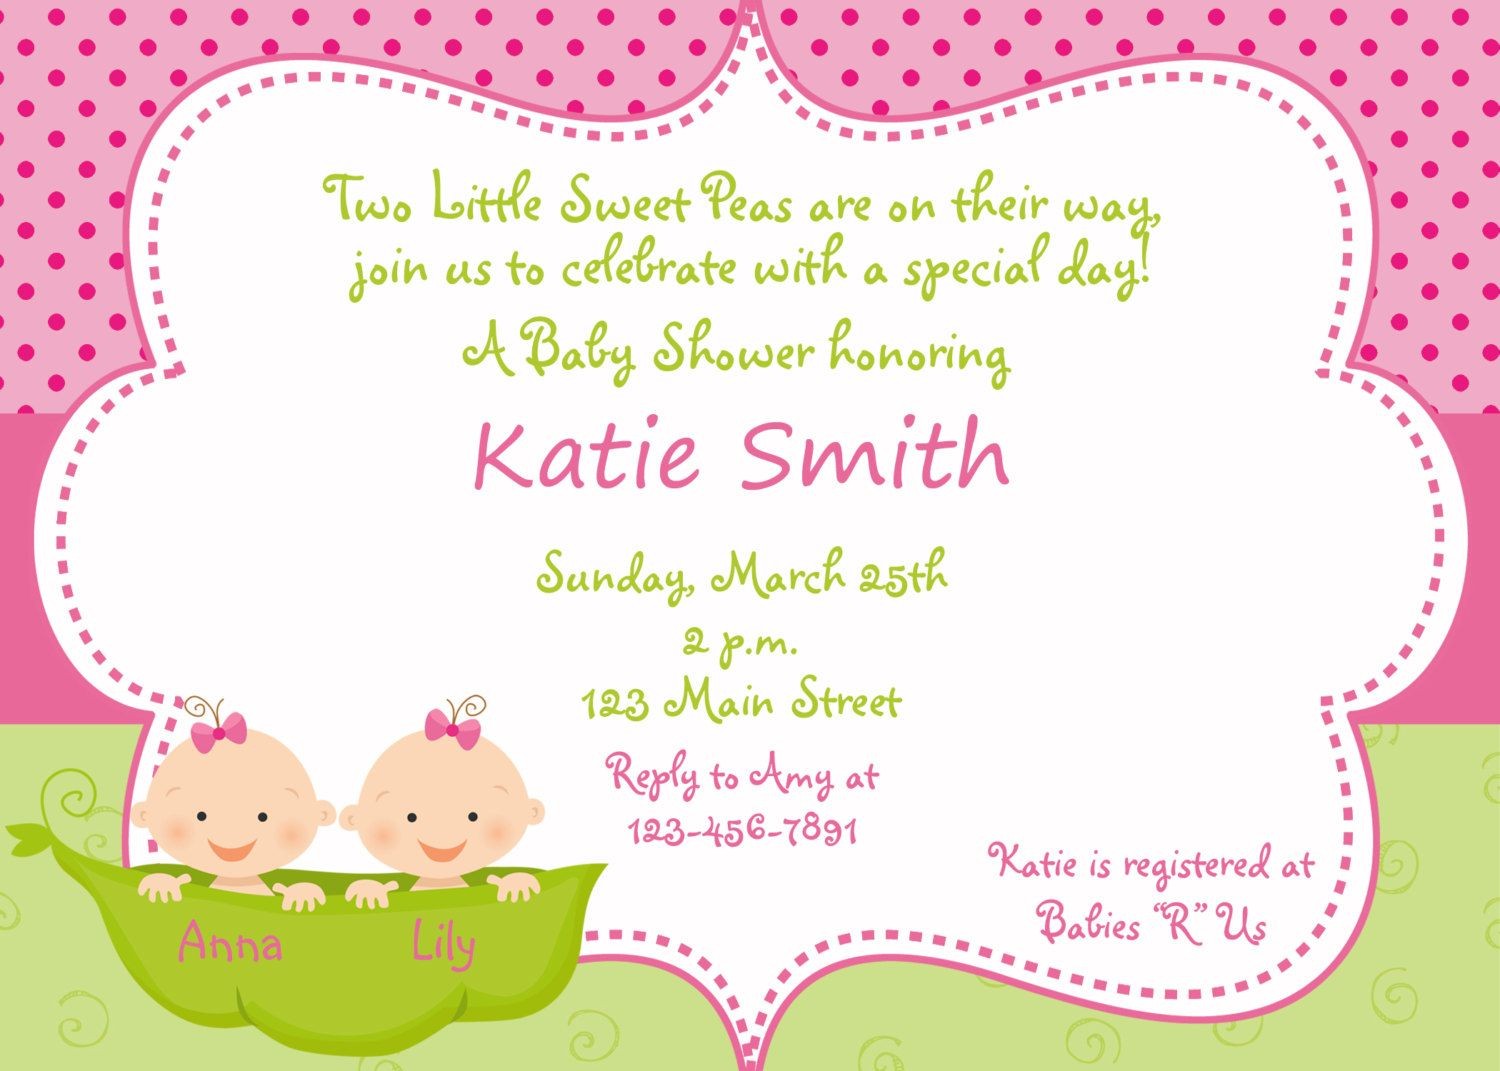 Twins baby shower | Baby Shower | Pinterest | Shower invitations ...